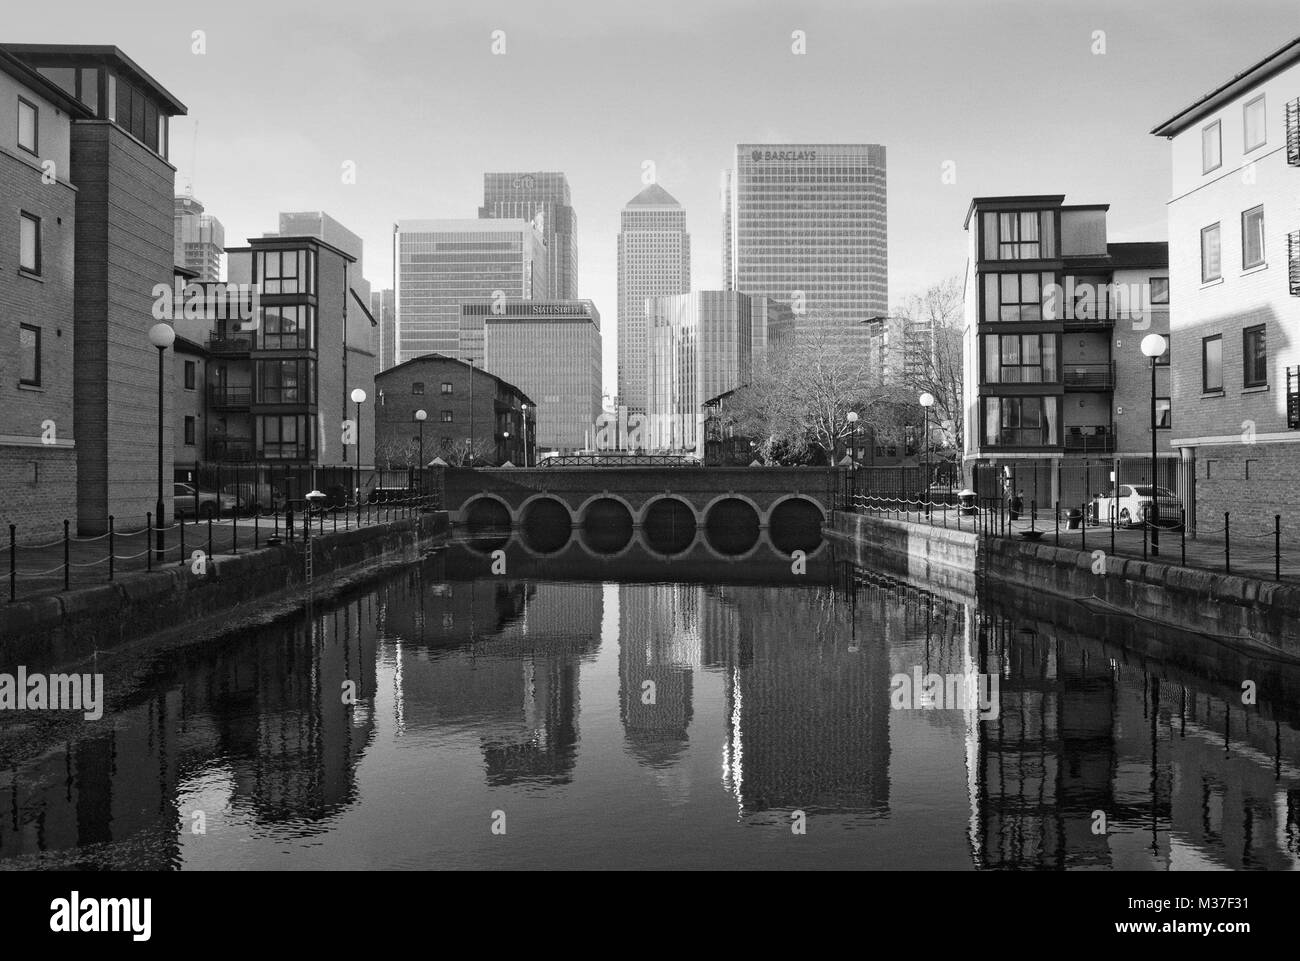 Canary Wharf, Isle of Dogs, East London UK, looking west from the River Thames - Stock Image